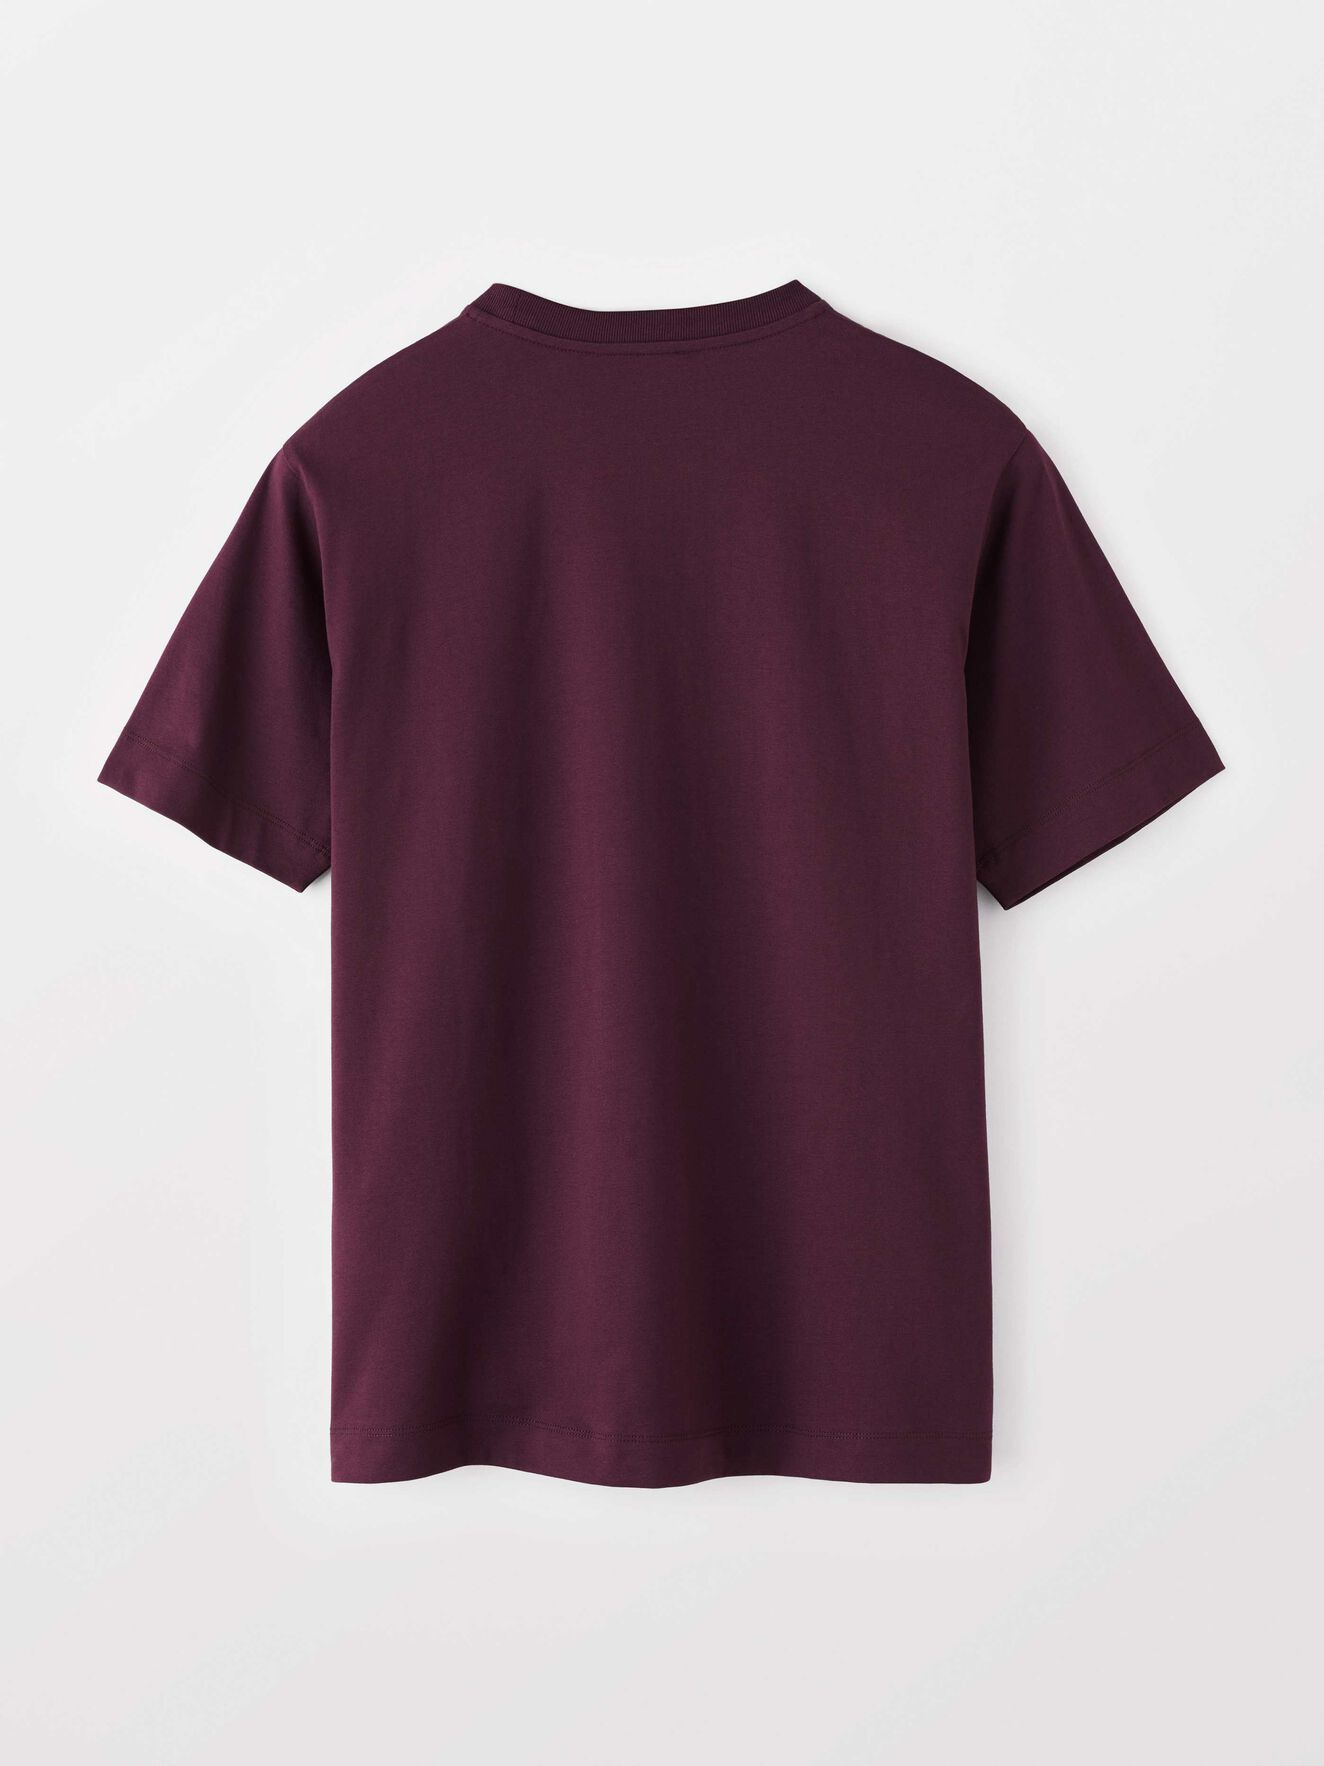 Dellana T-Shirt in Hot Rust from Tiger of Sweden